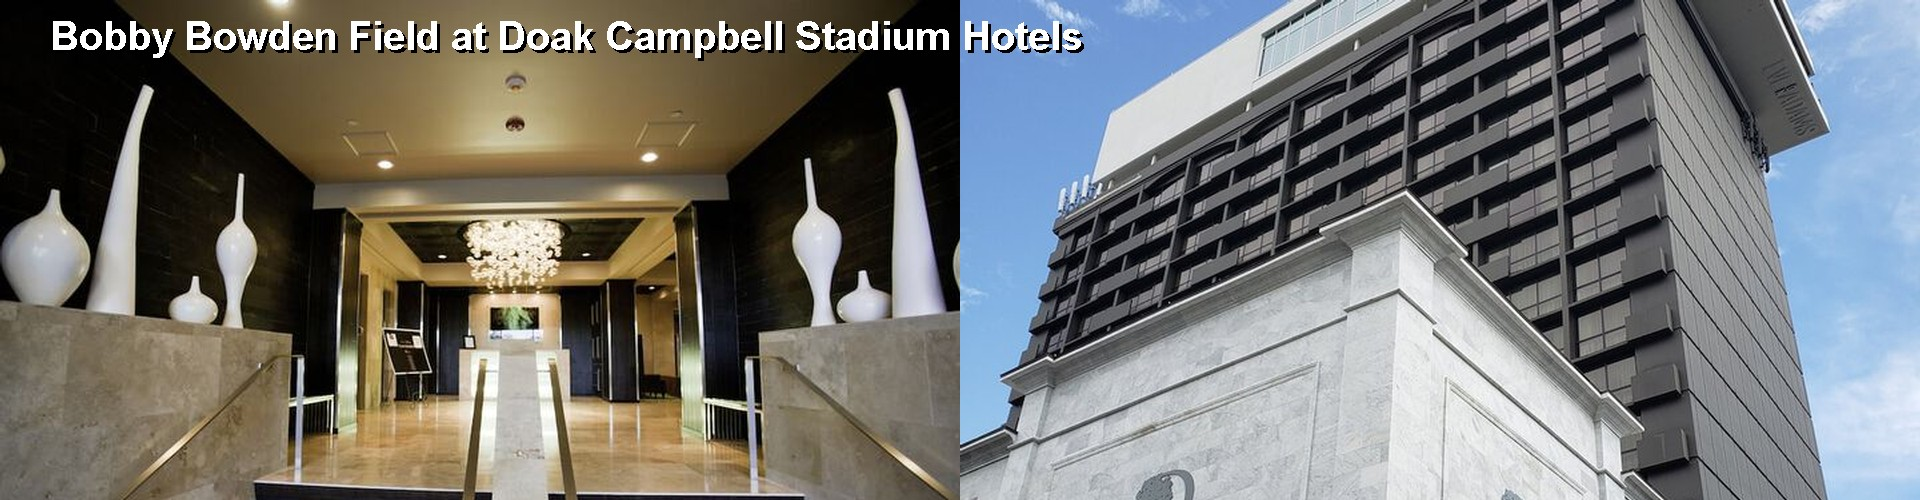 5 Best Hotels near Bobby Bowden Field at Doak Campbell Stadium